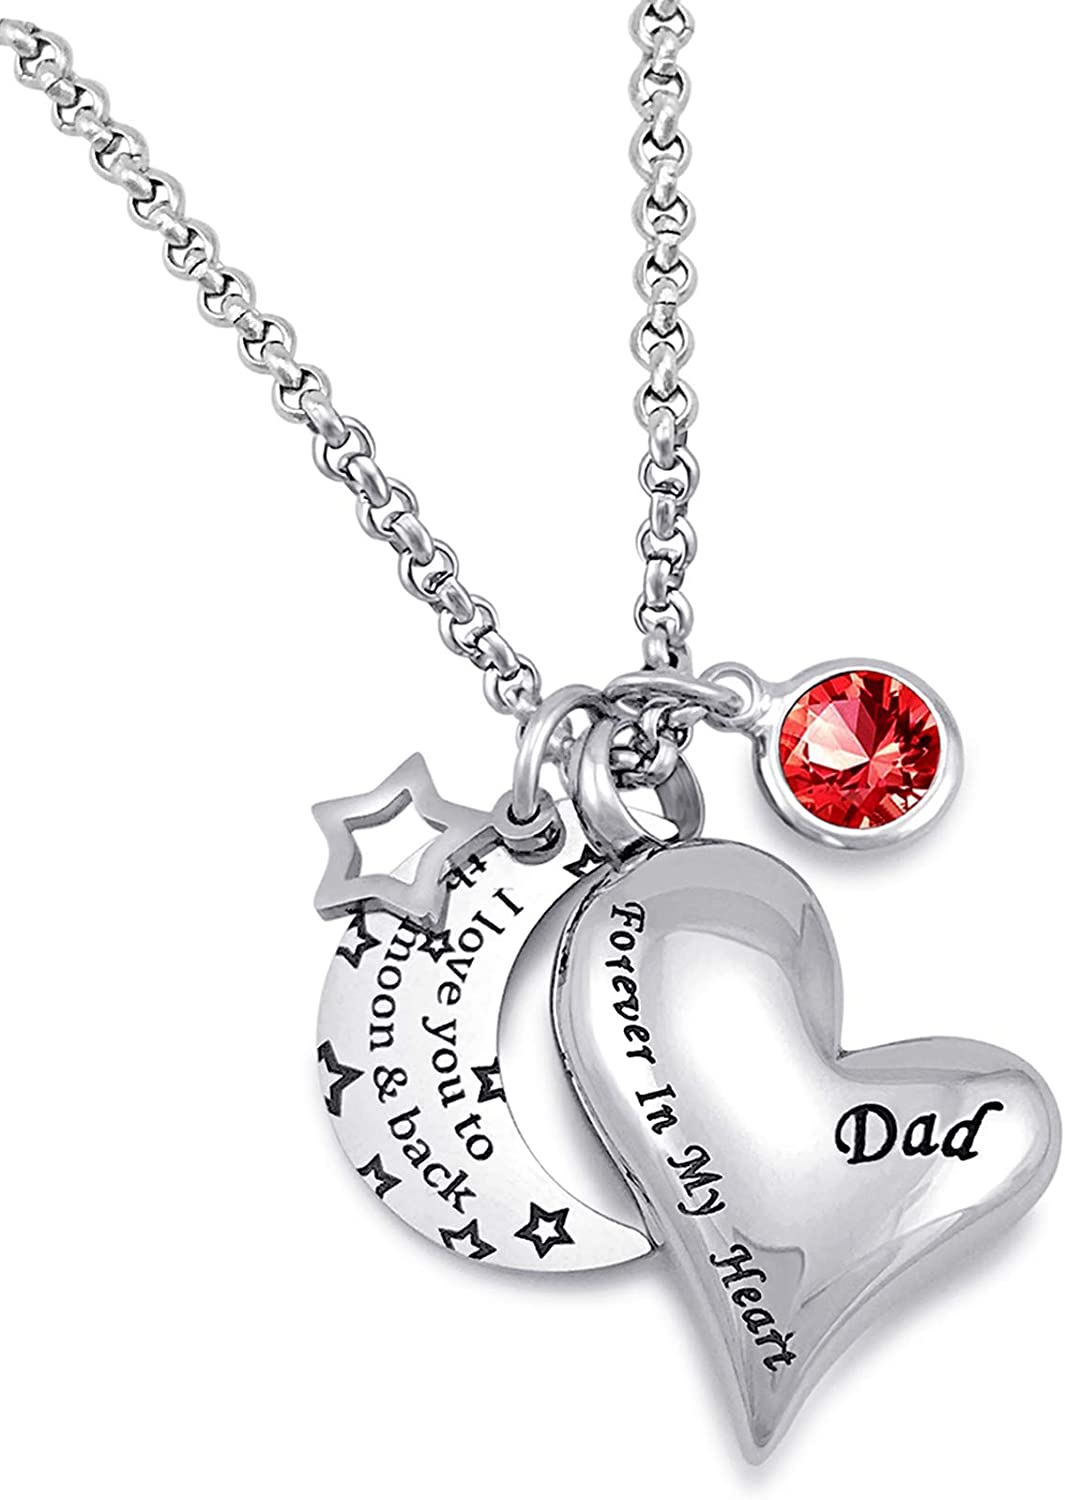 YOUFENG Urn Necklaces for Ashes I Love Max 81% OFF Back Max 41% OFF Moon and You The to